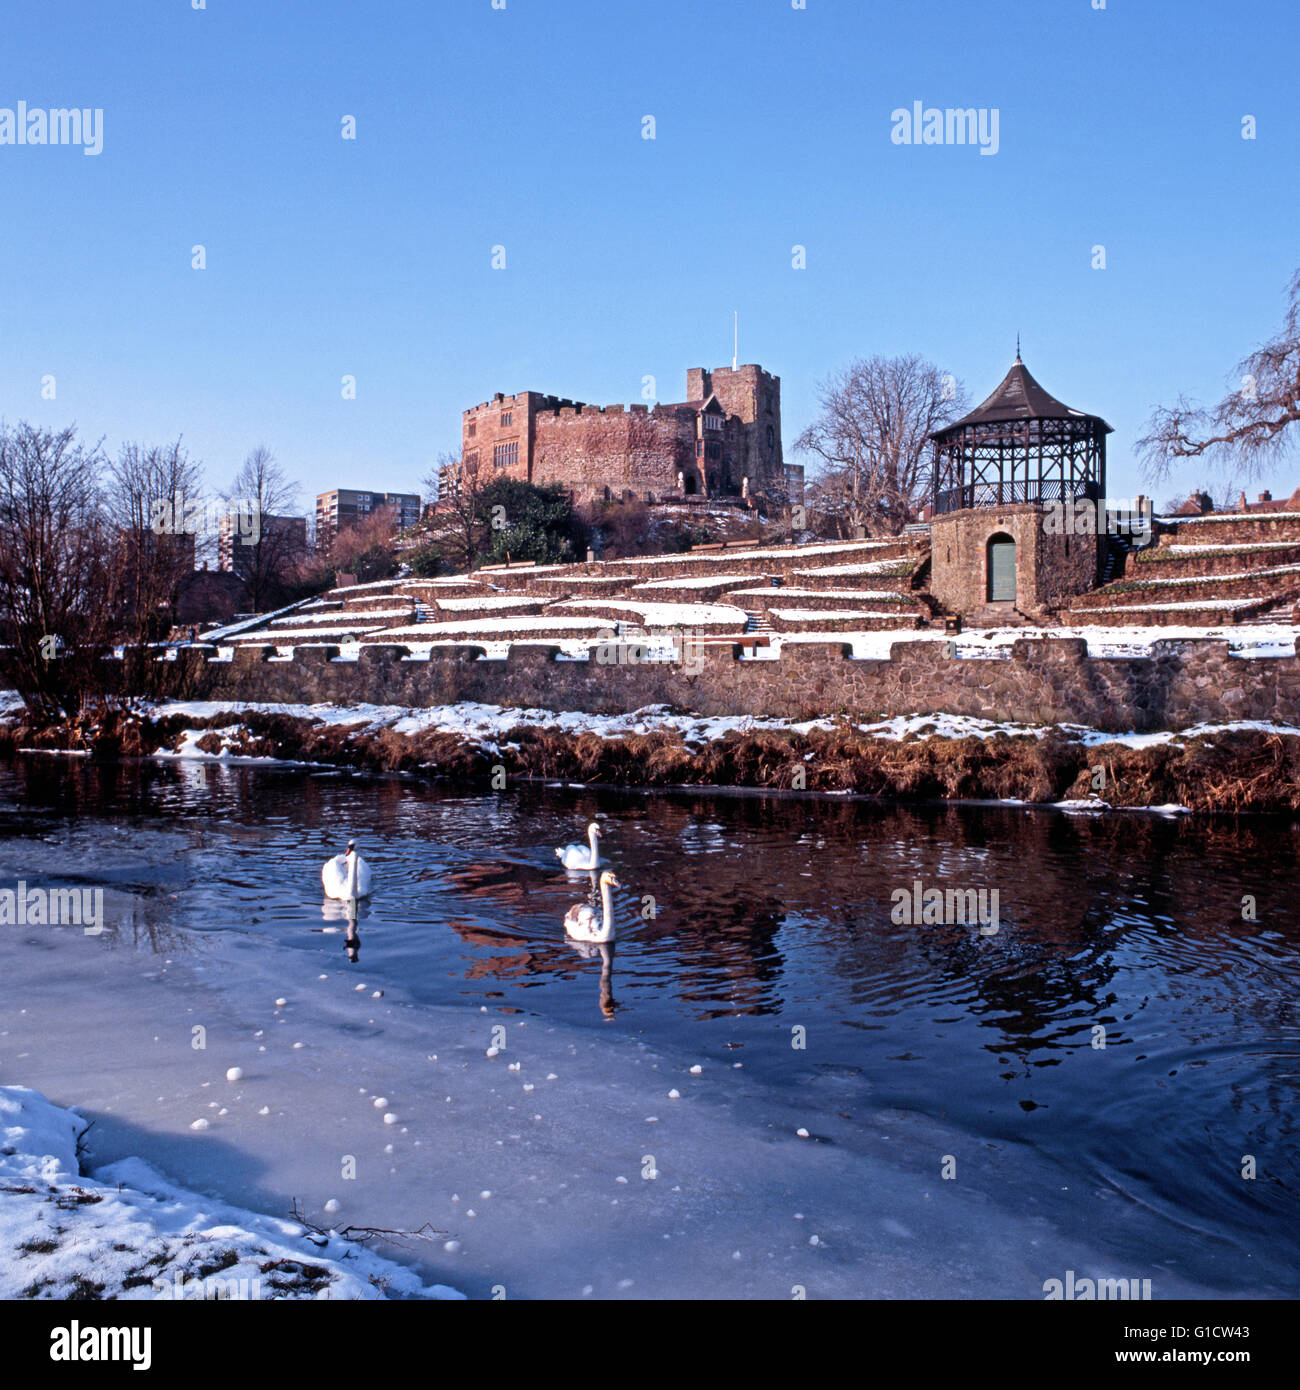 Swans on the partly frozen River Anker with the Norman Castle and Castle gardens to rear, Tamworth, Staffordshire, - Stock Image